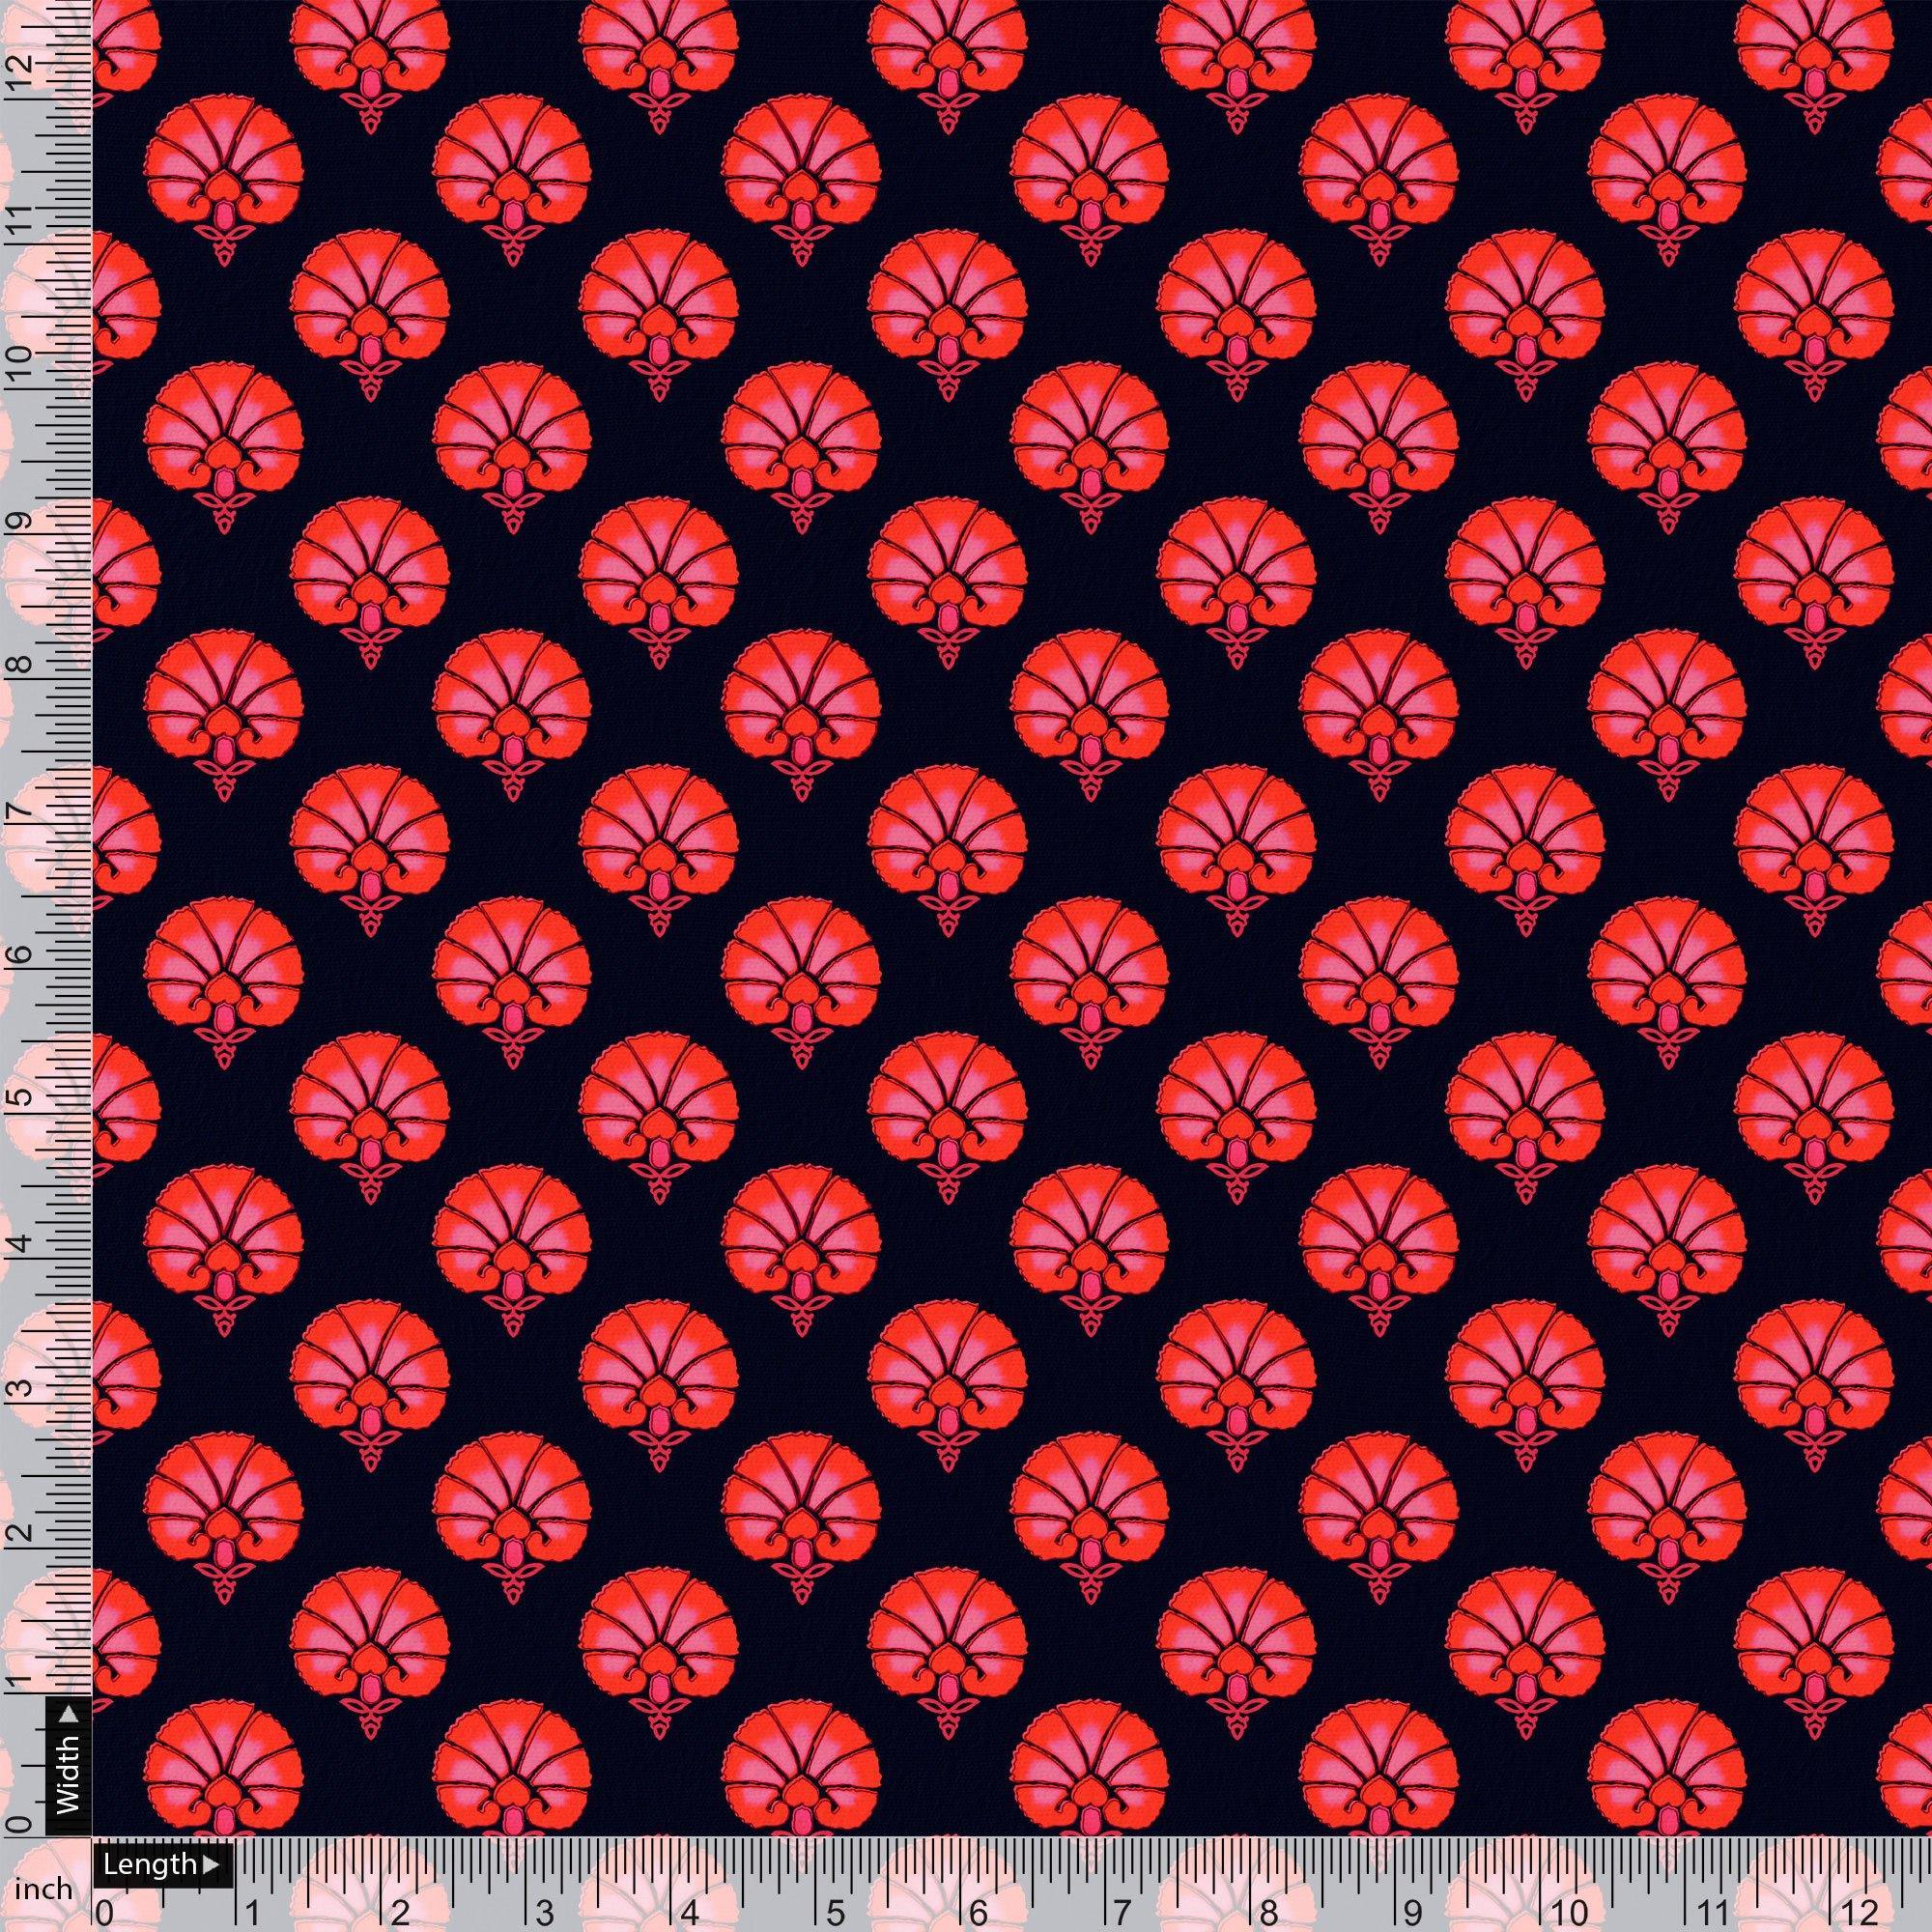 Beautiful Red Floral Over Dark Blue Base Printed Fabric - FAB VOGUE Studio. Shop Fabric @ www.fabvoguestudio.com